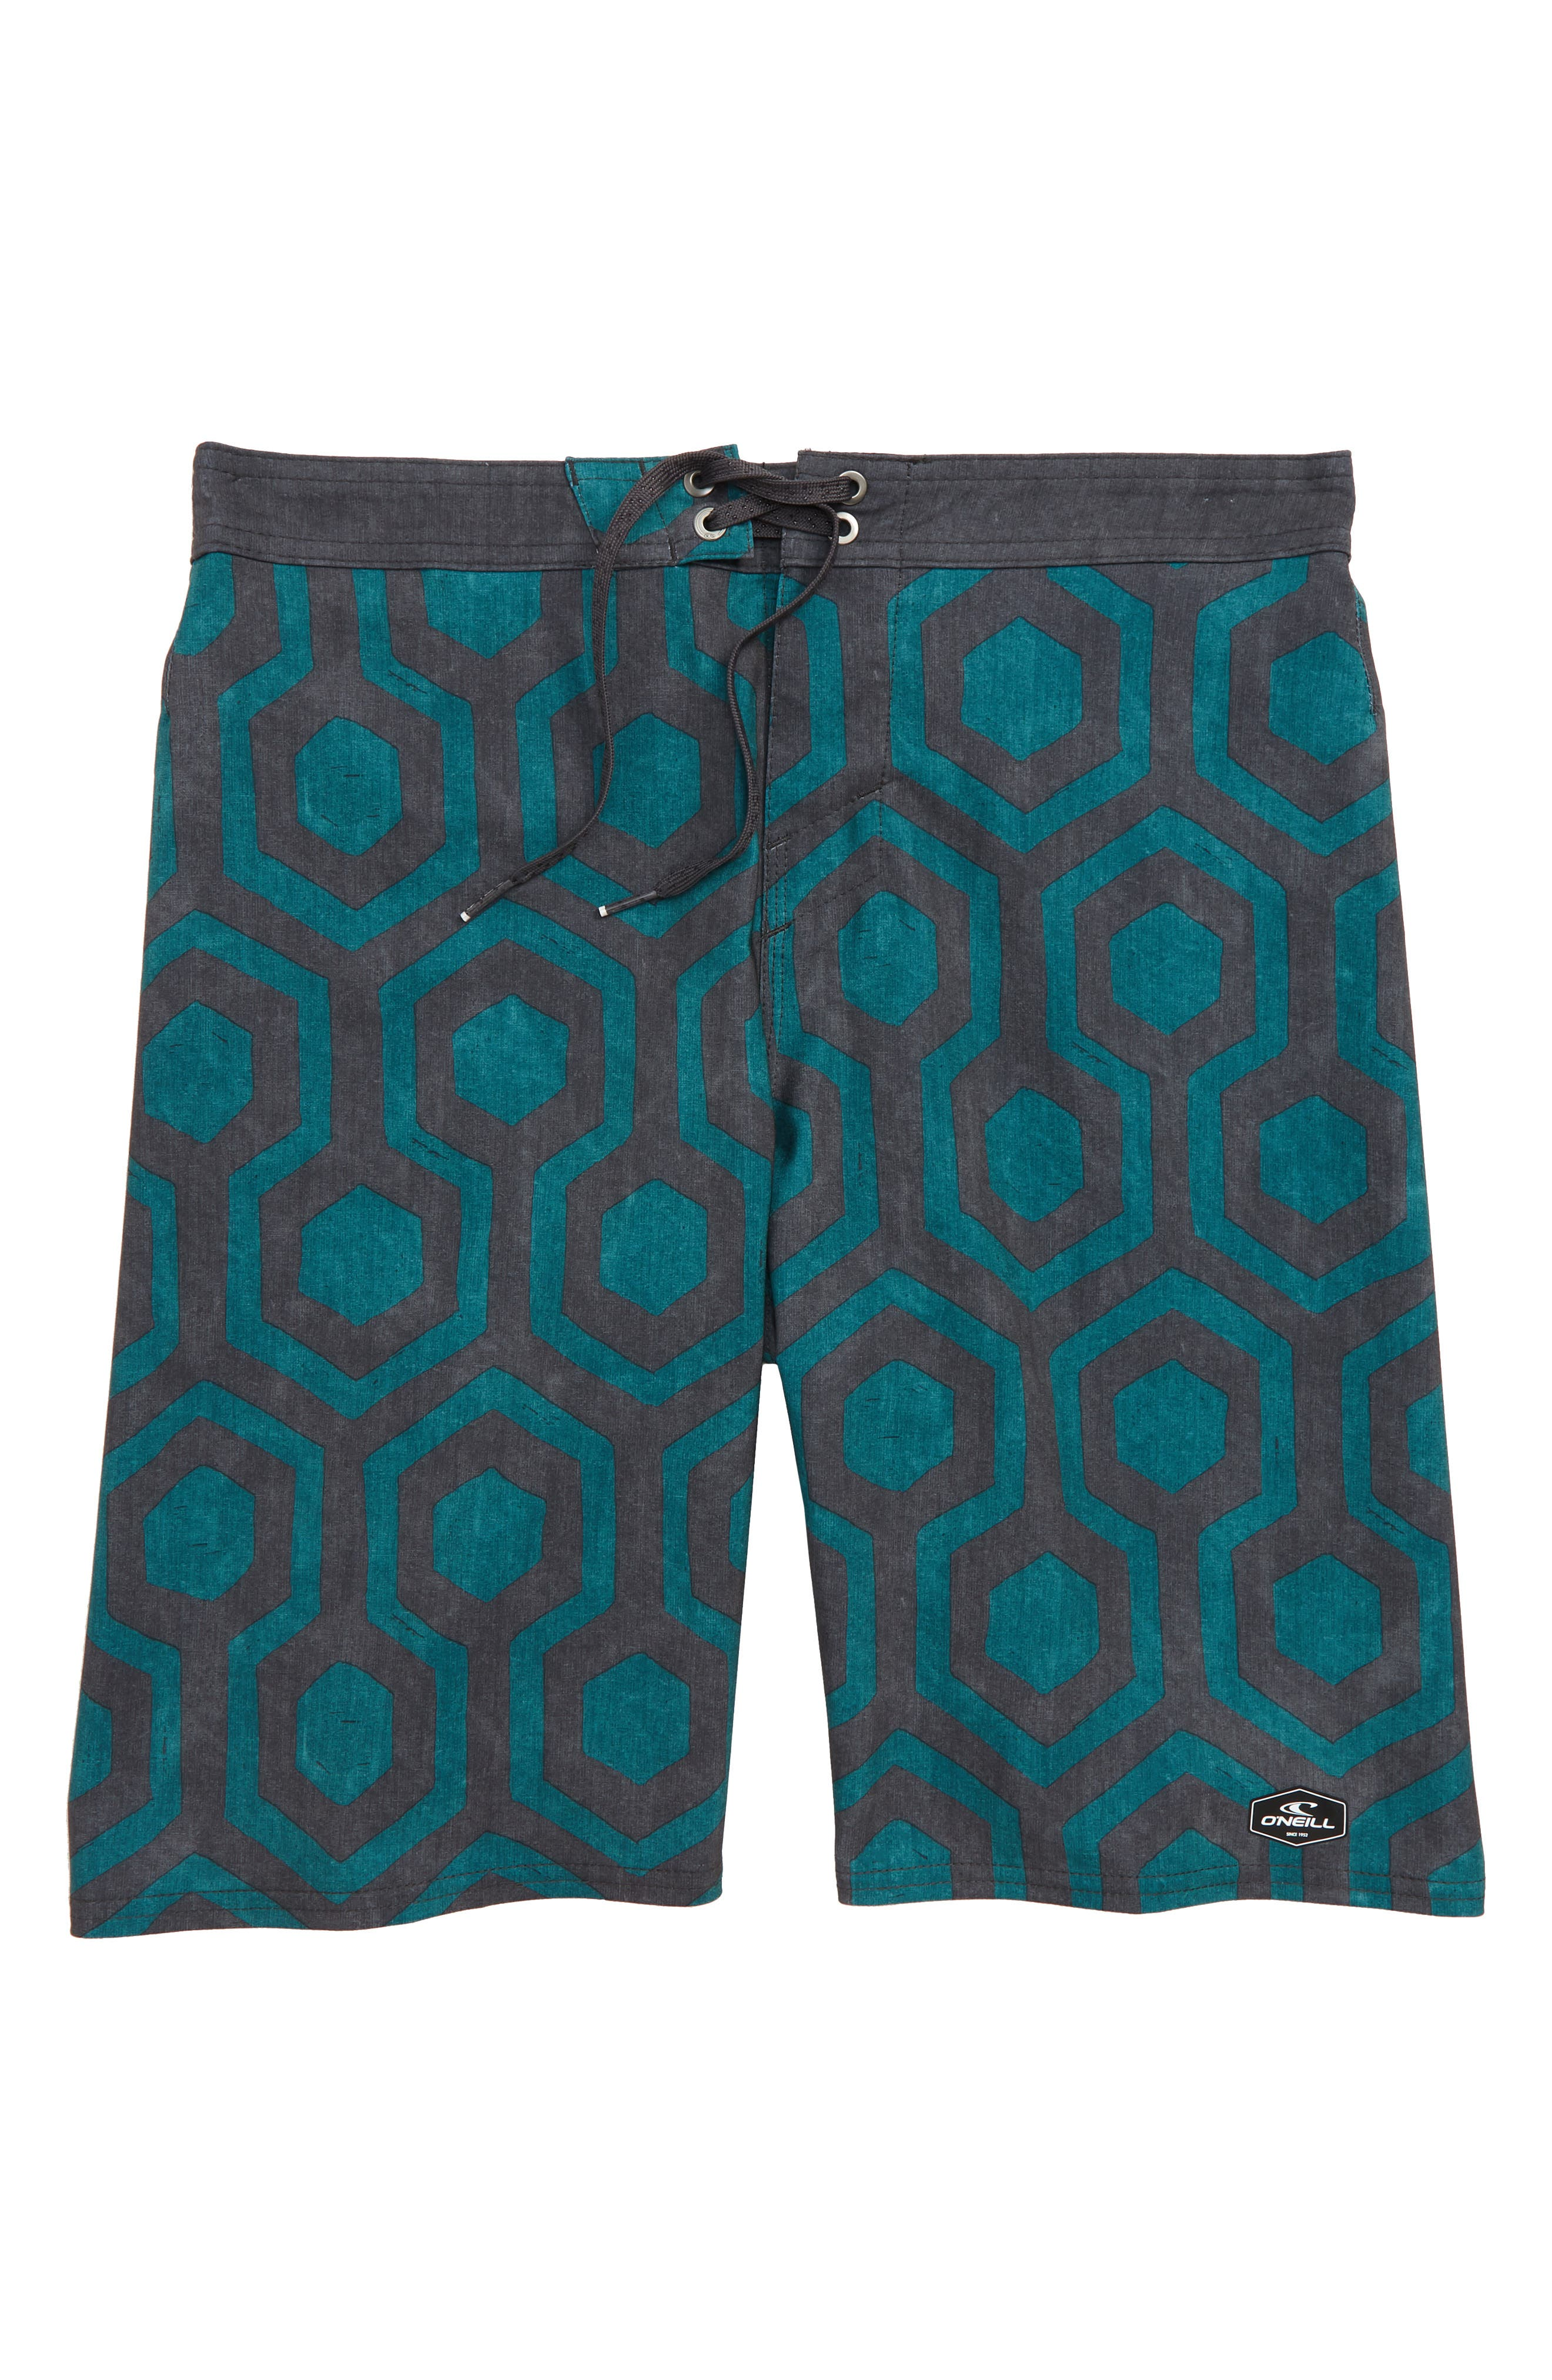 Hyperfreak Wrenched Board Shorts,                             Main thumbnail 1, color,                             021